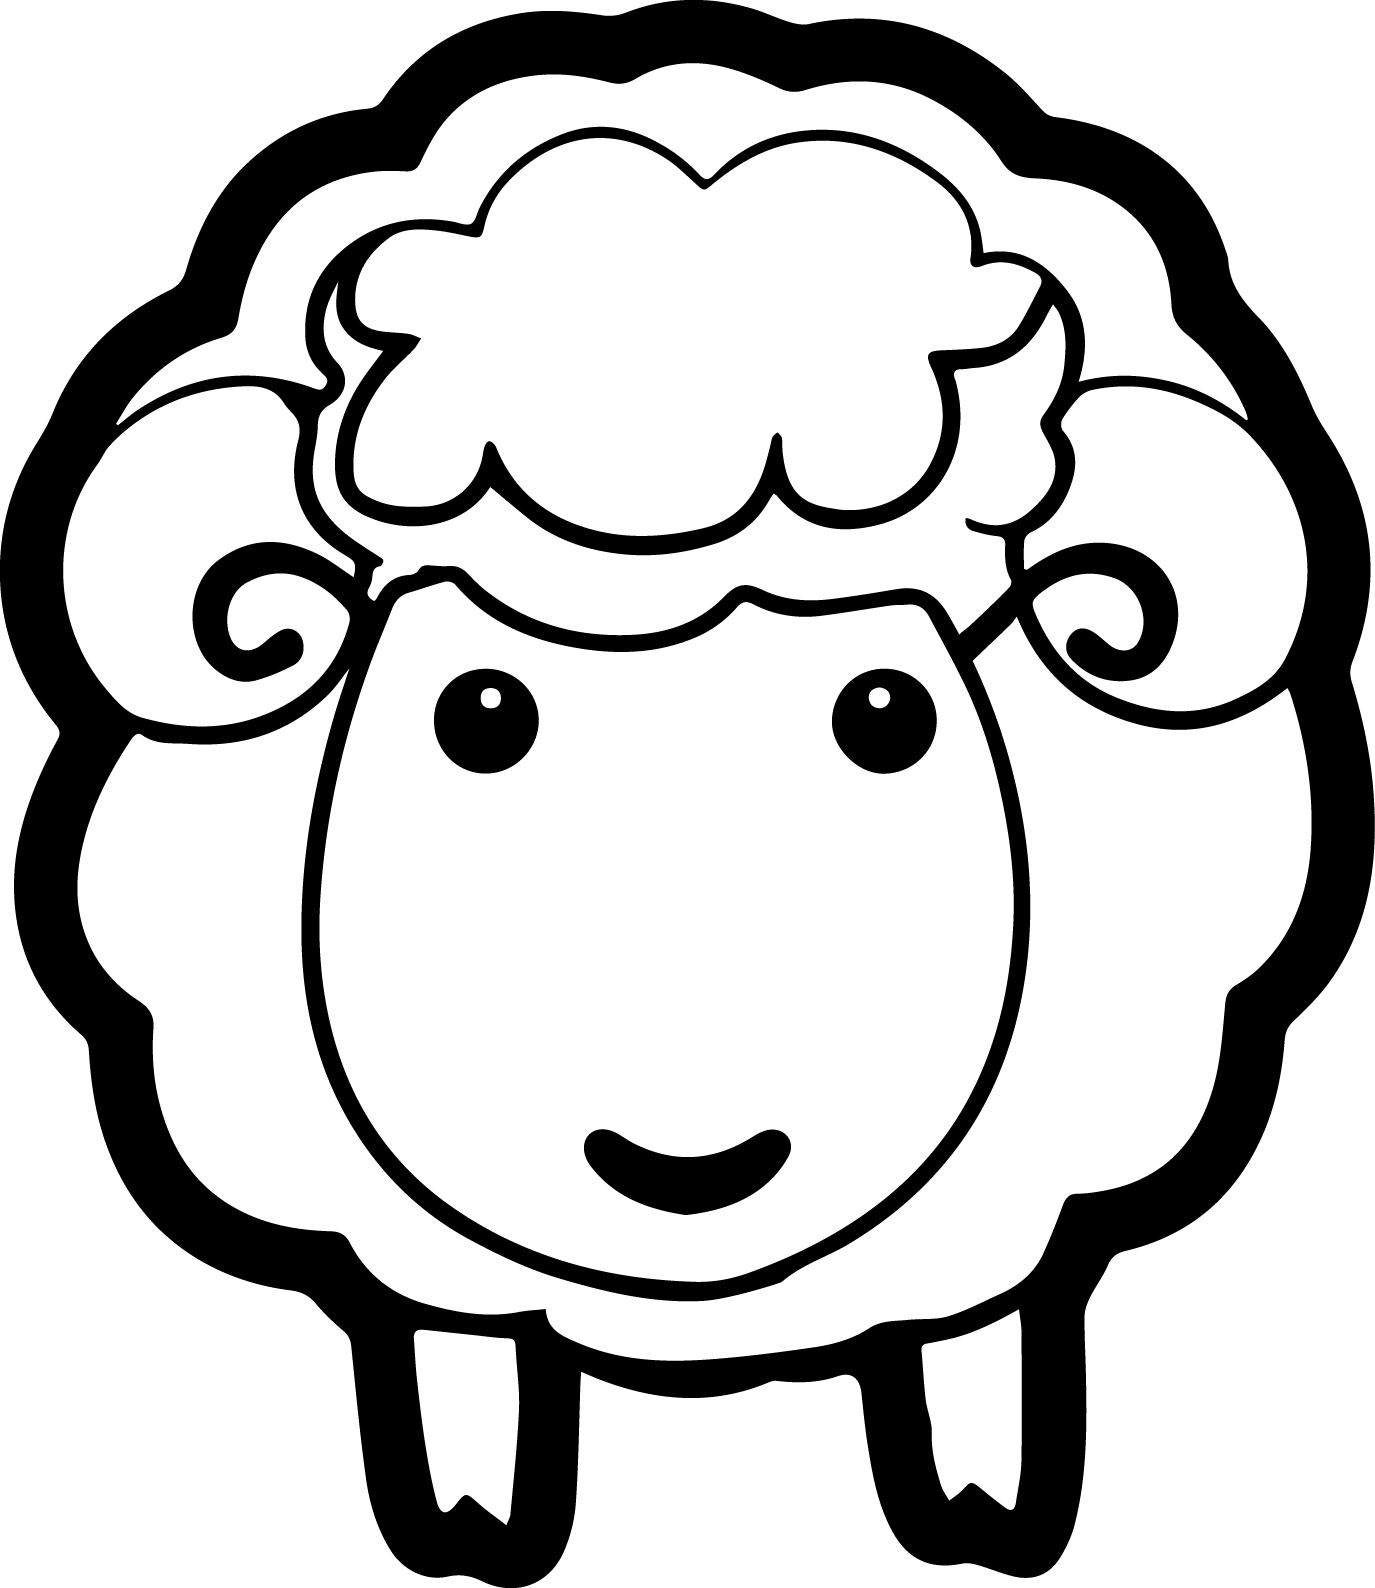 sheep coloring pages to print sheep coloring pages wecoloringpagecom to sheep coloring pages print